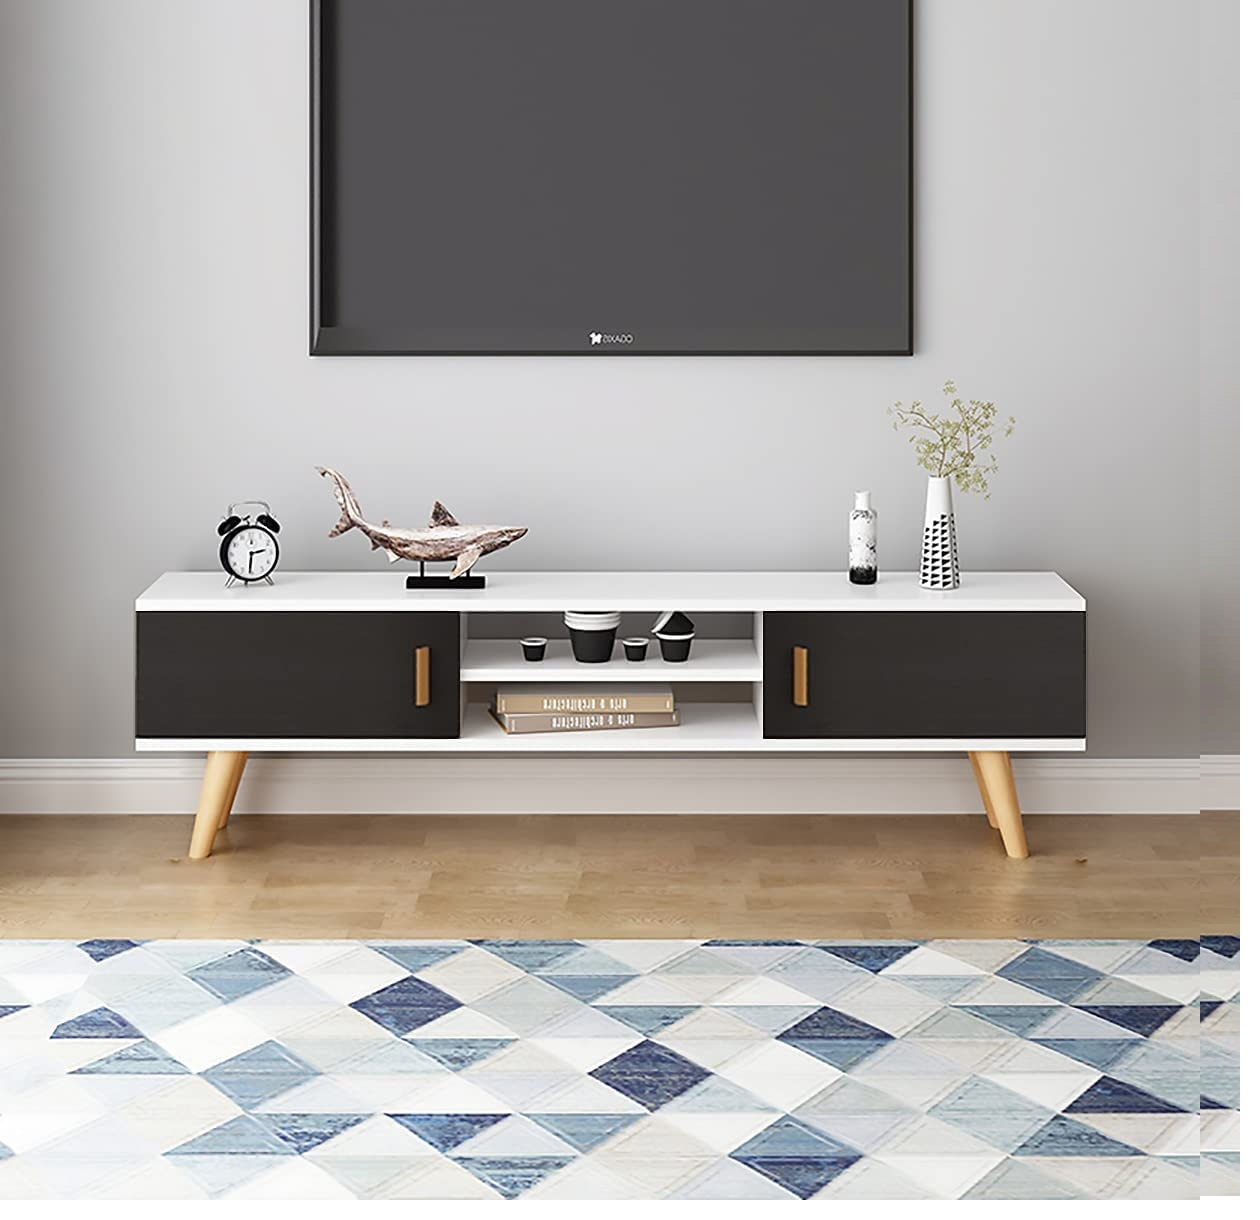 Minimalist small Living room wooden cabinet with sholves design ideas